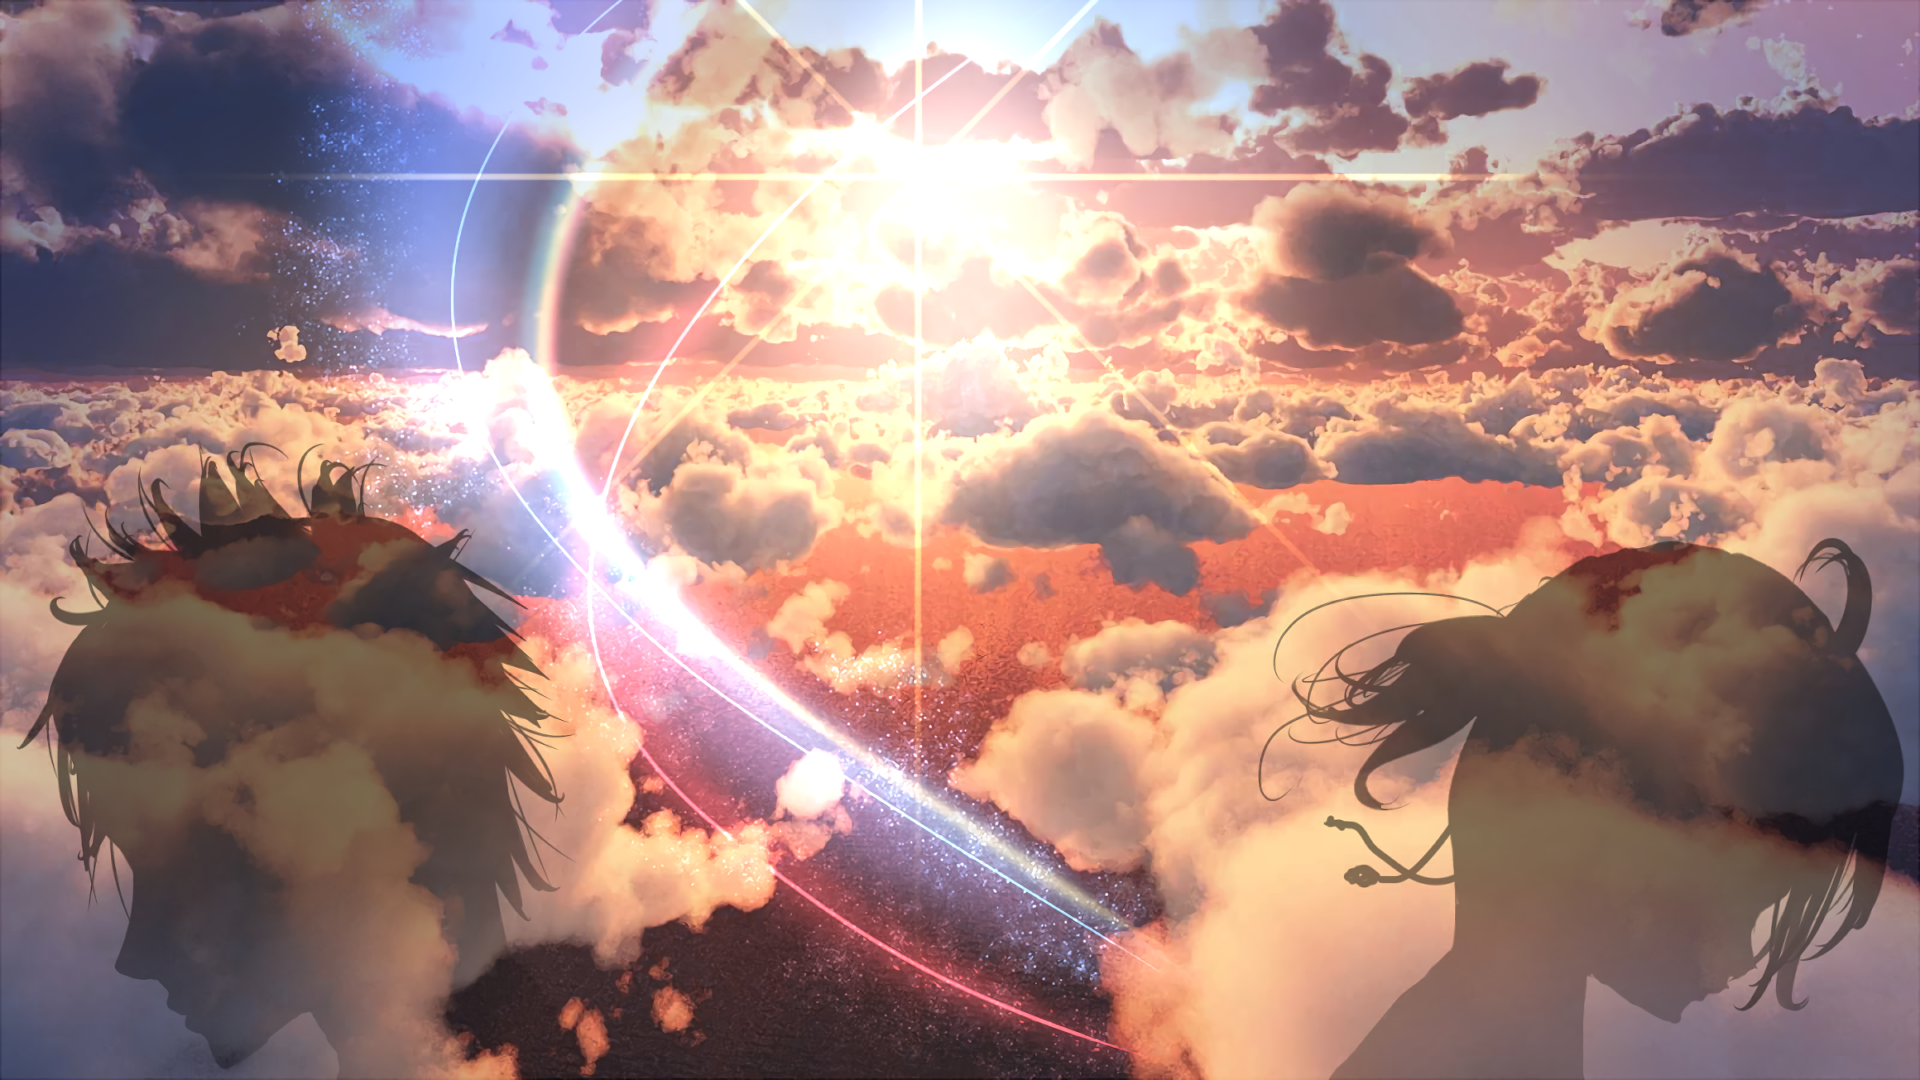 Your name hd wallpaper background image 1920x1080 - A and s name wallpaper ...